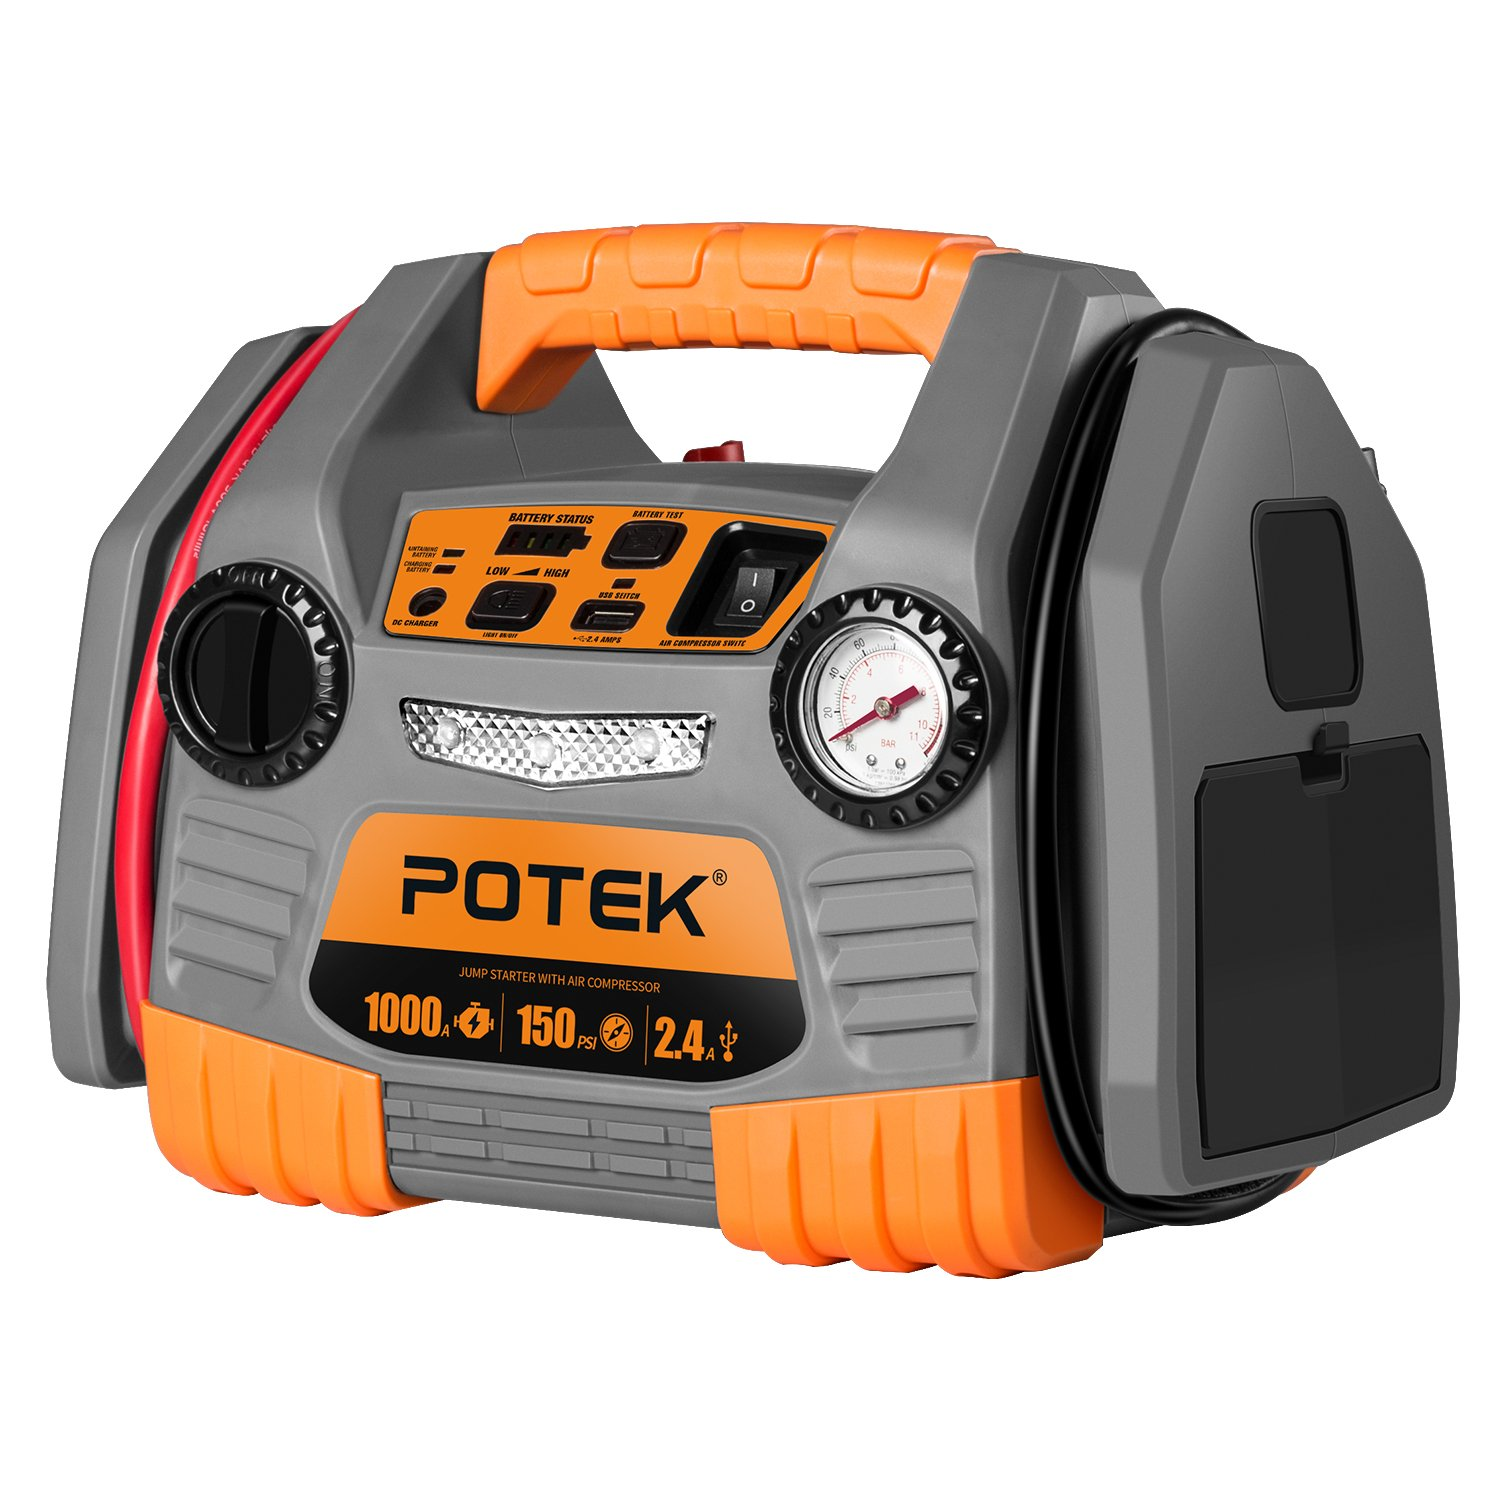 POTEK Car Jump Starter with 150 PSI Tire Inflator/Air compressor,1000 Peak/500 Instant Amps with USB Port to Charge Iphone,IPad, Kindle by POTEK